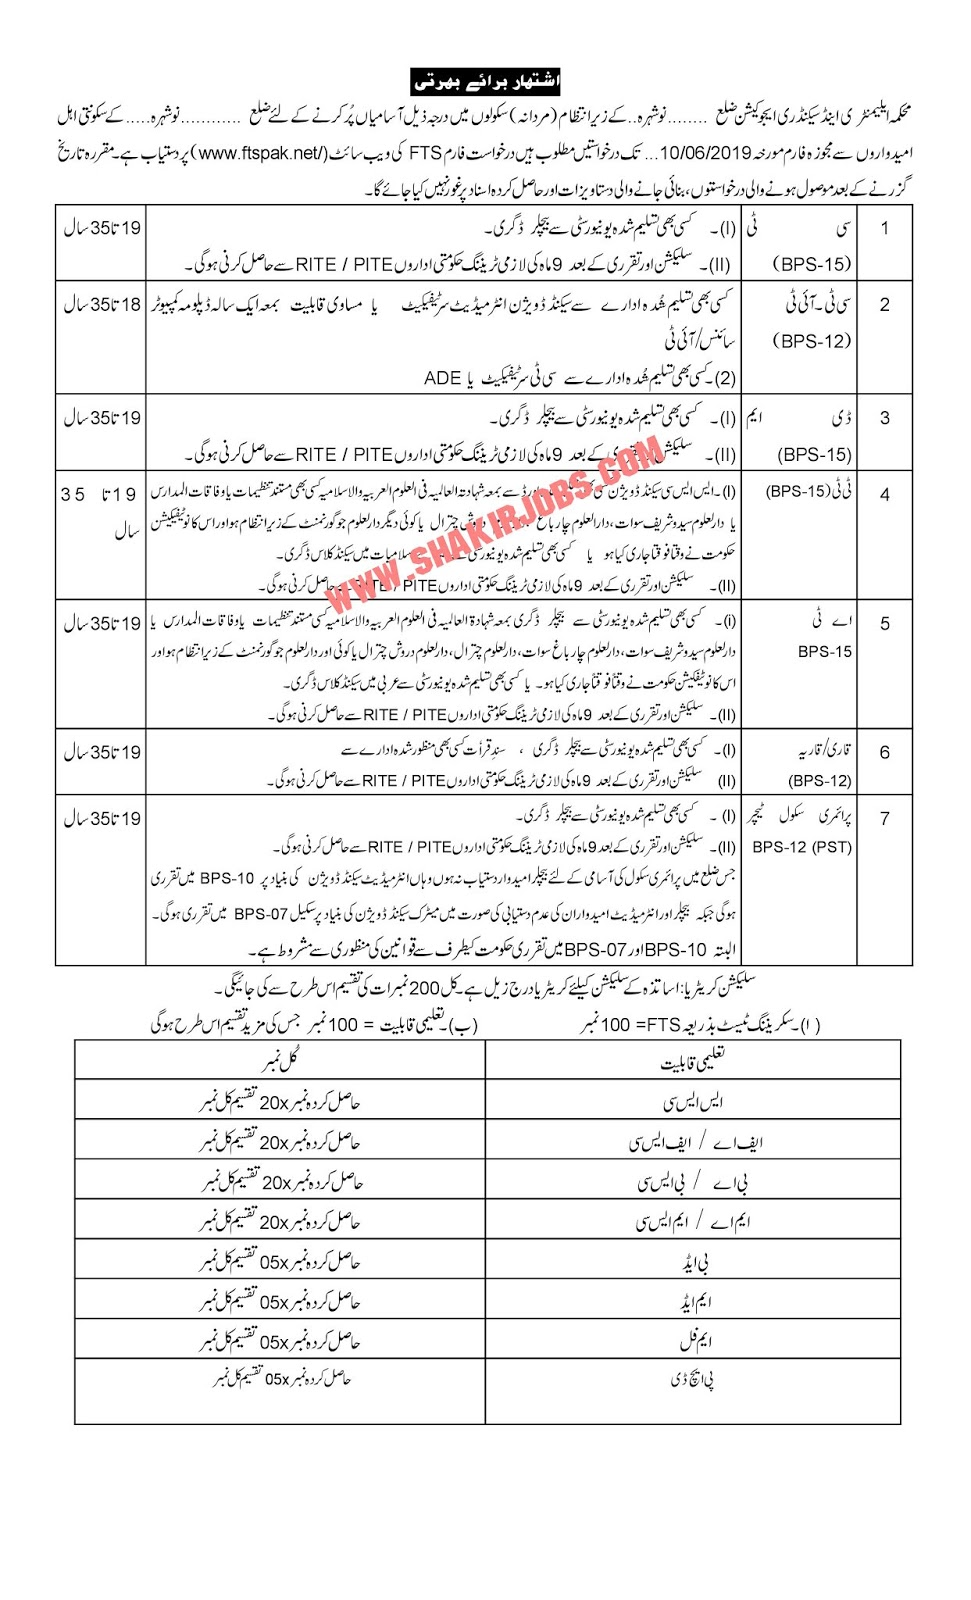 Armoured Vehicles Latin America ⁓ These Nts Application Form 2017 Kpk